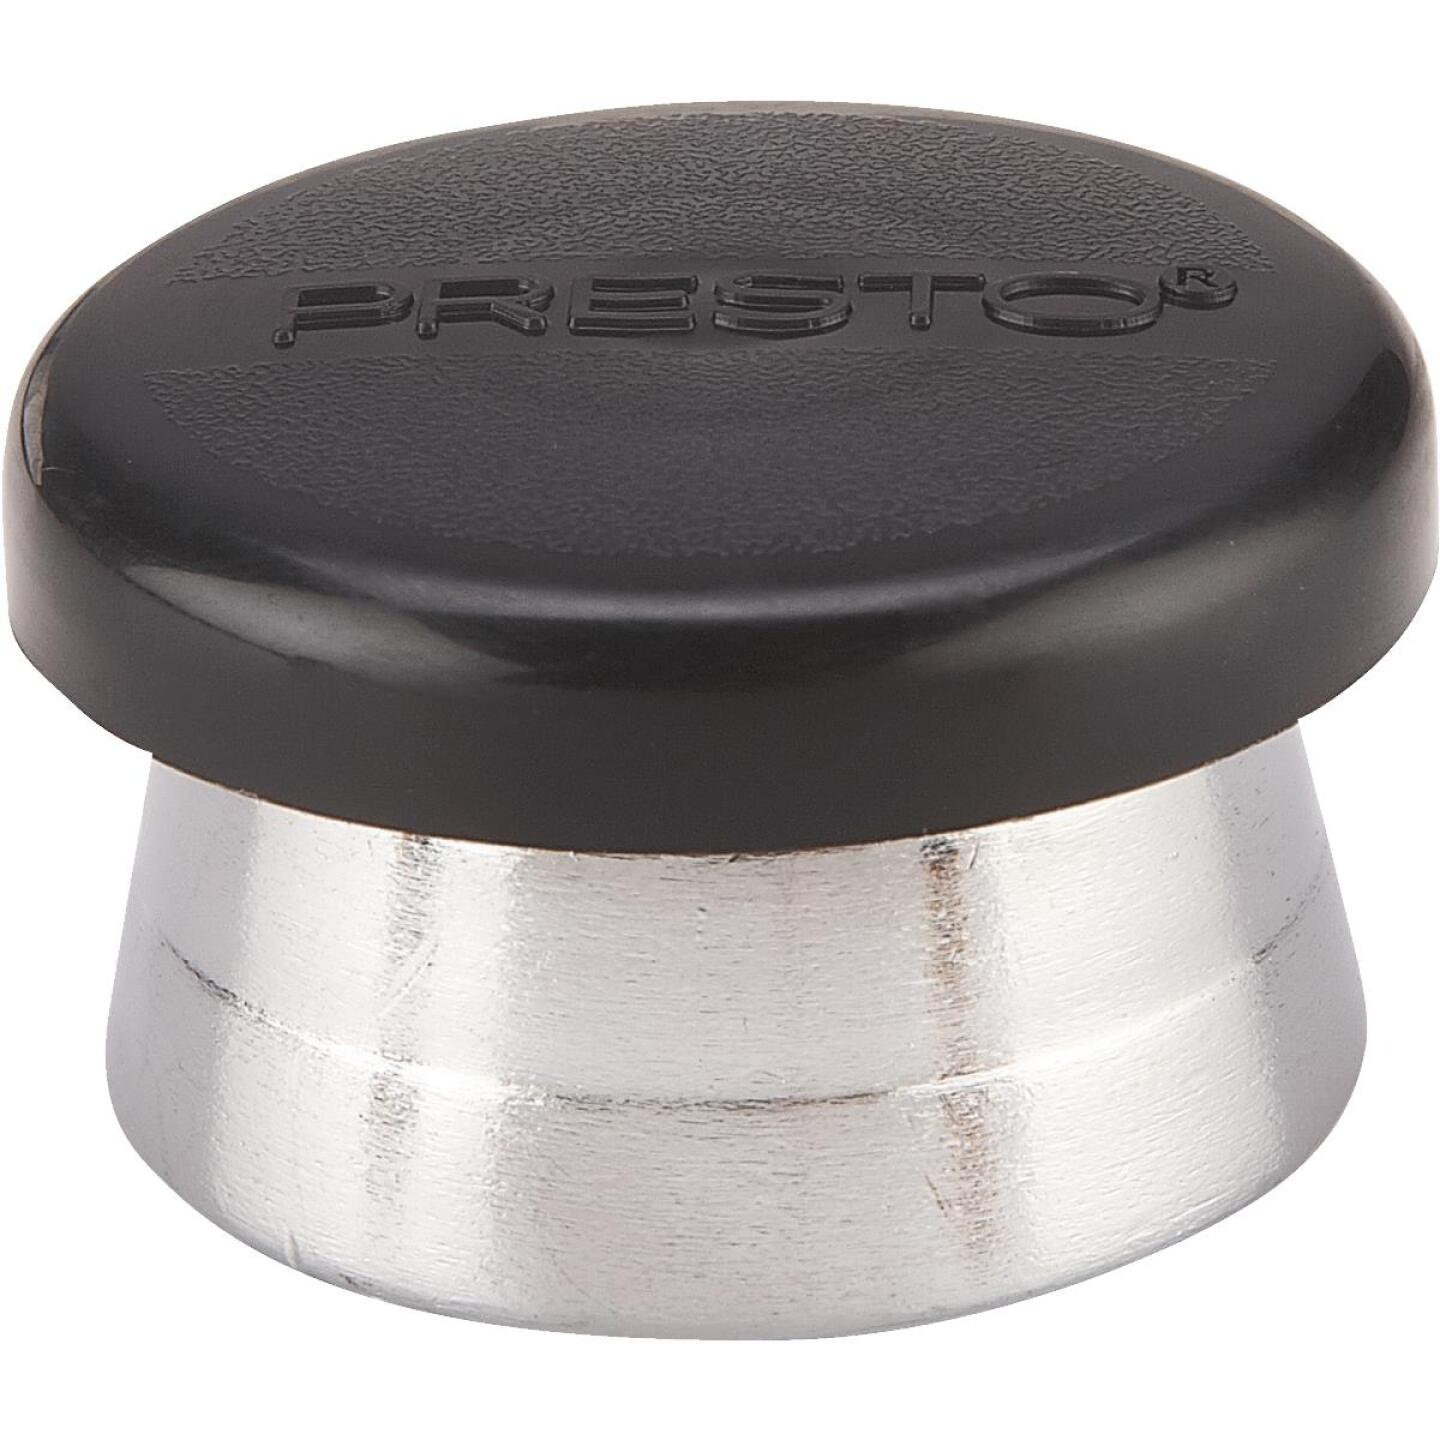 Presto Pressure Regulator Image 1